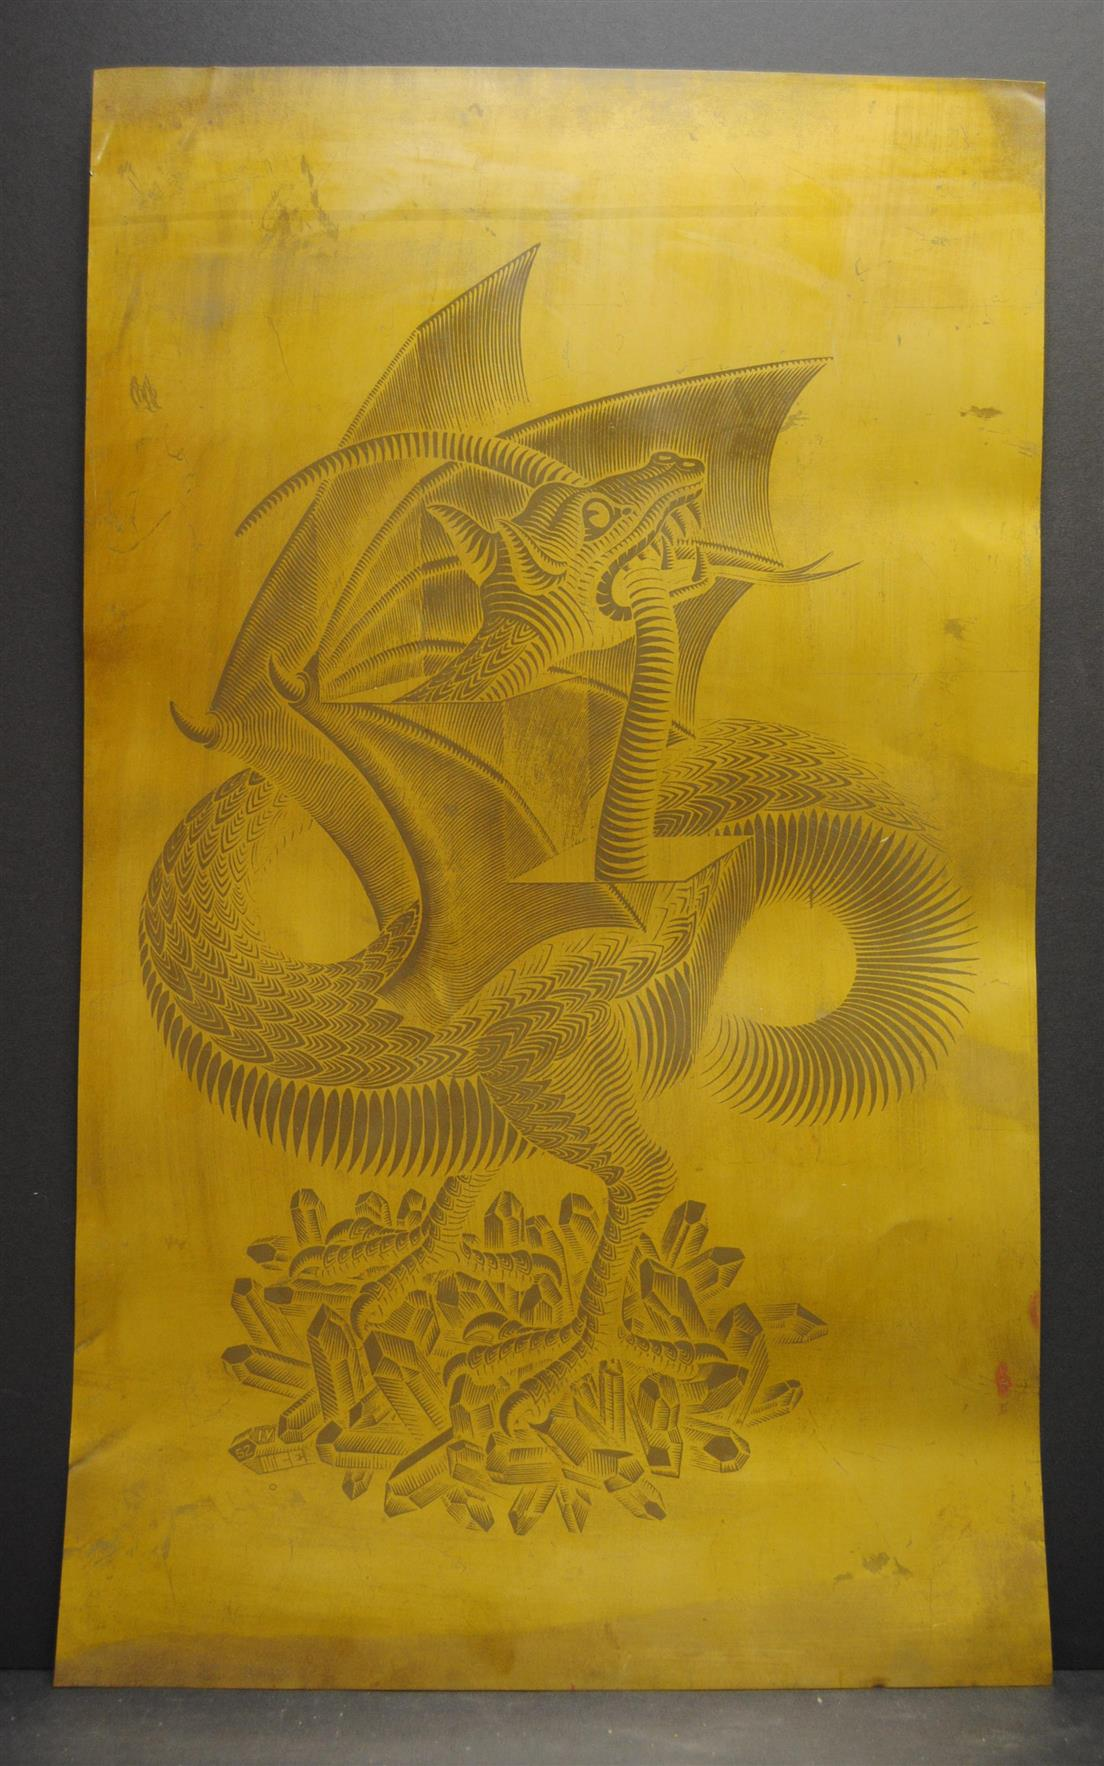 Escher M.C. ( artist ) - Draak - Dragon - Original copper printing plate MC Escher Bool 379 . MC ESCHER